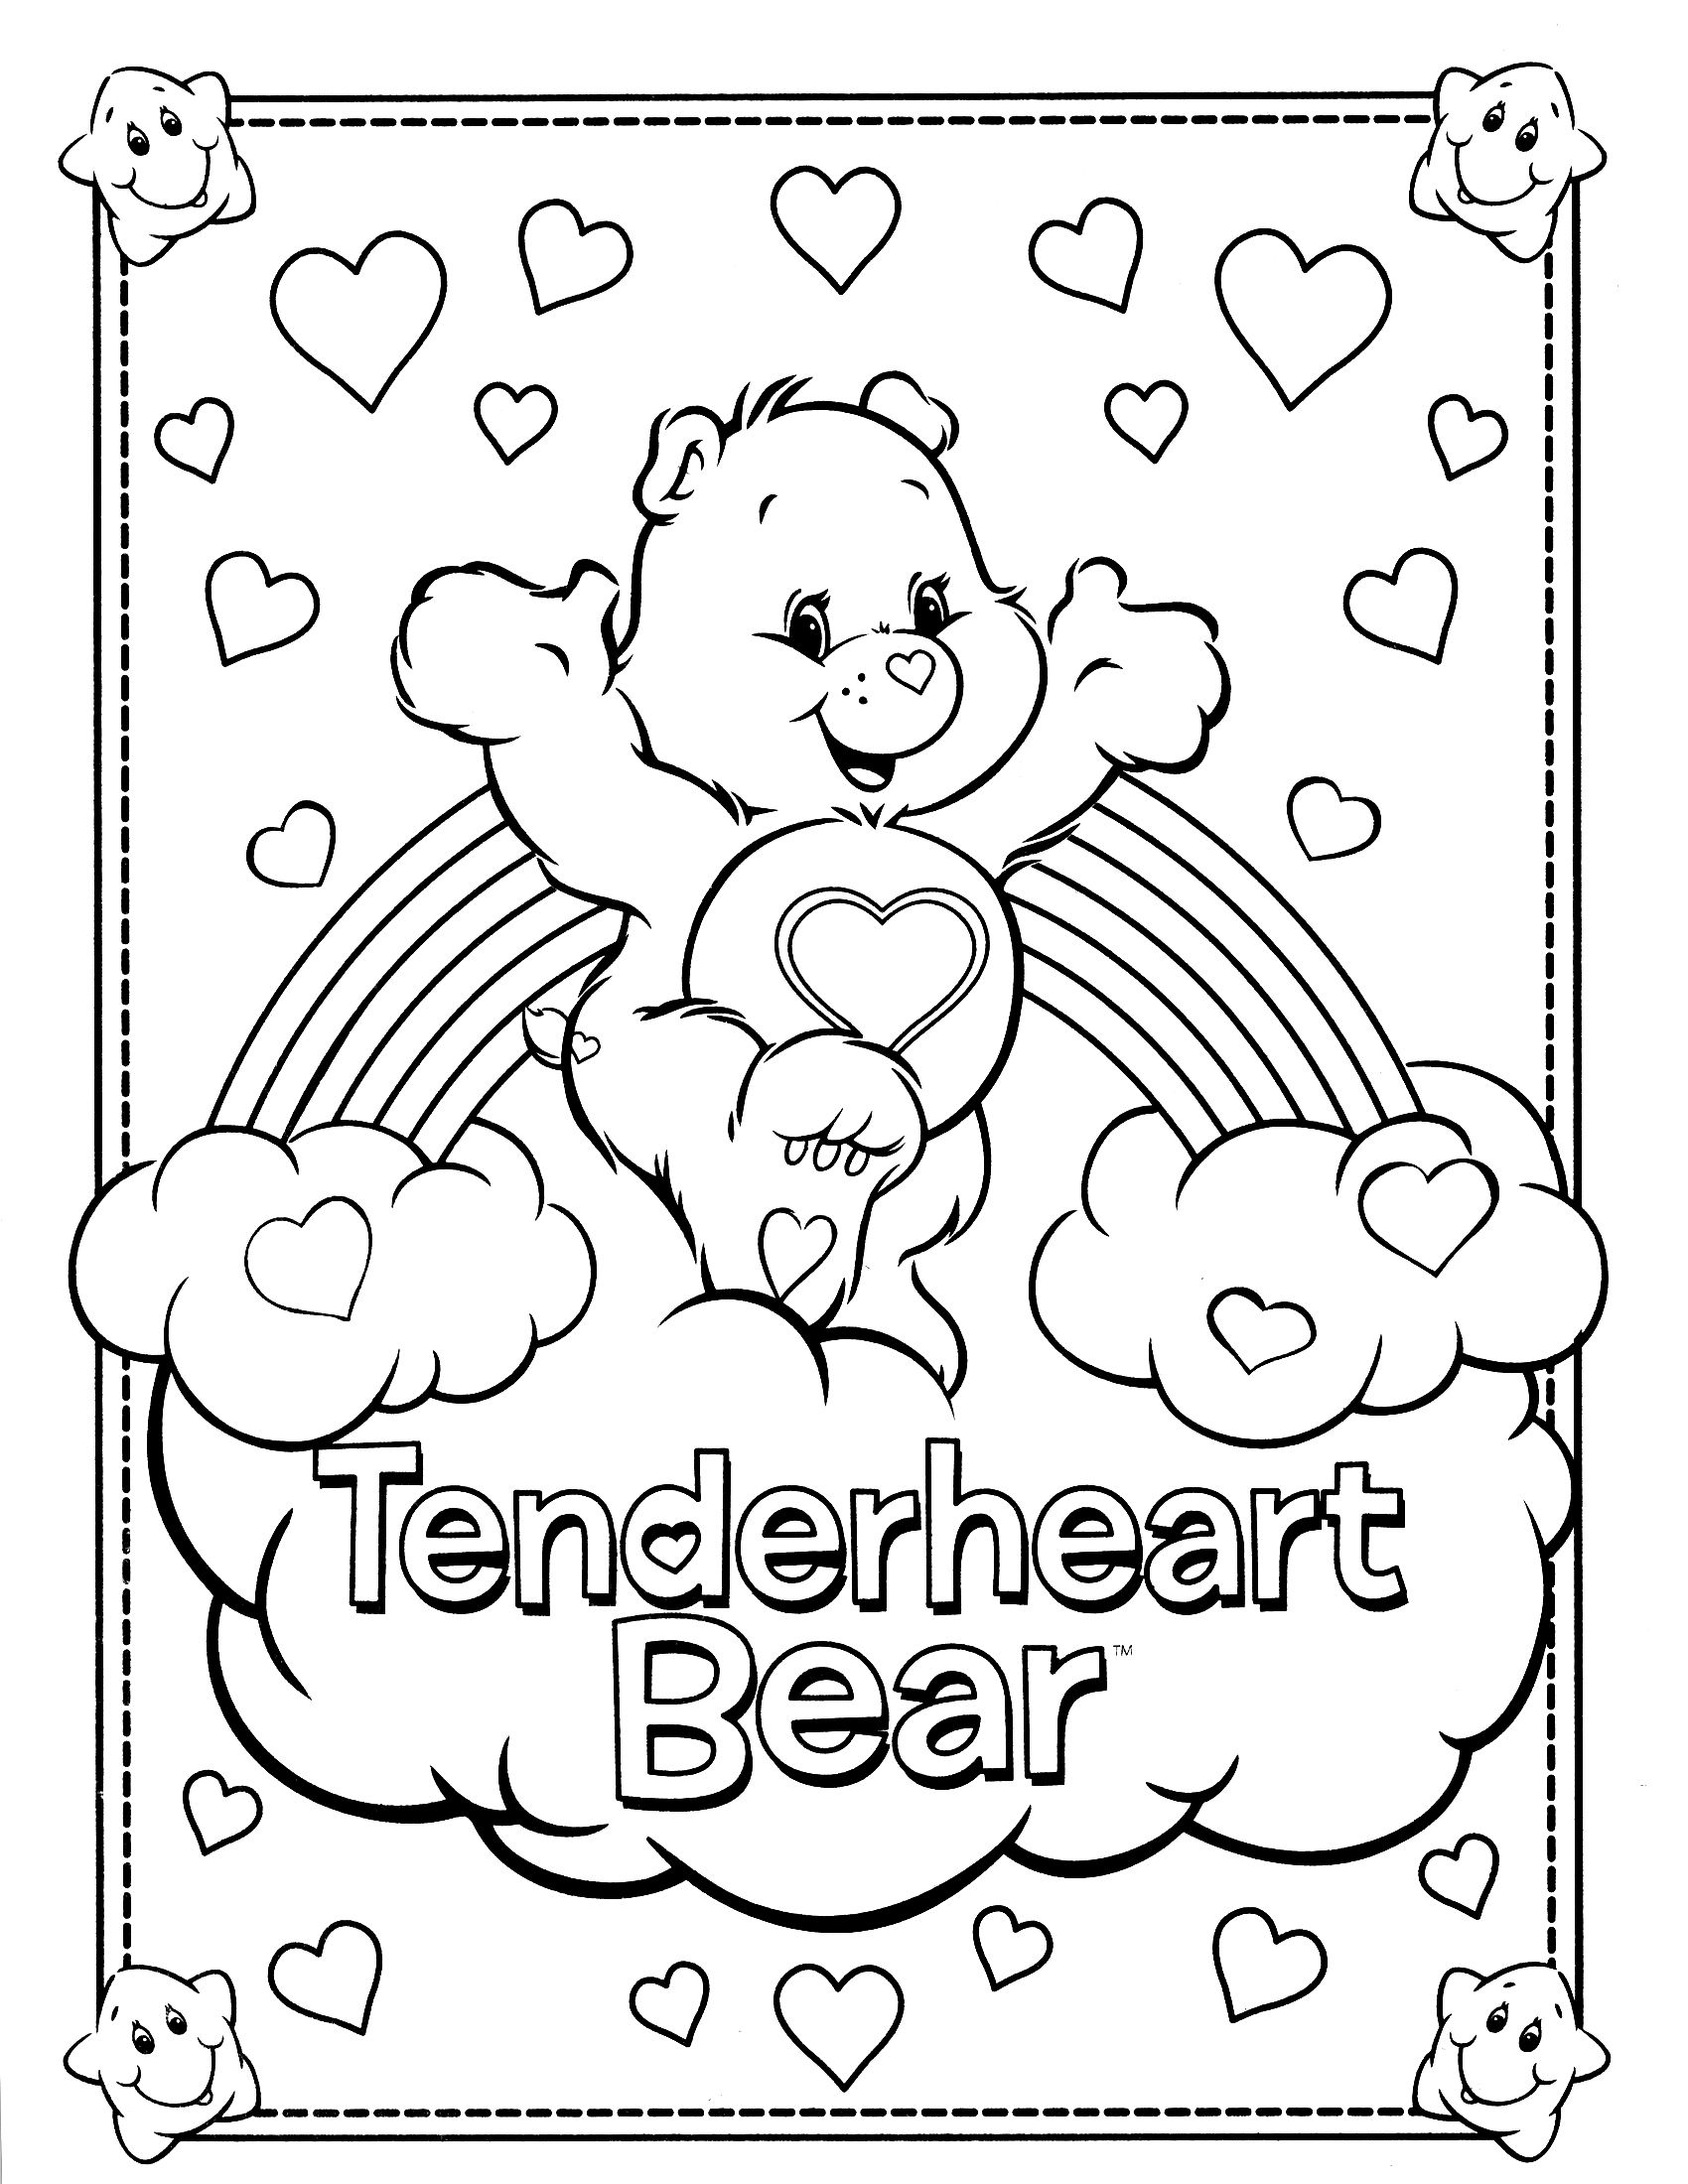 Coloring Pages Coloring Pages Of Care Bears 1000 images about care bear tenderheart 4 on pinterest coloring free printable pages and search